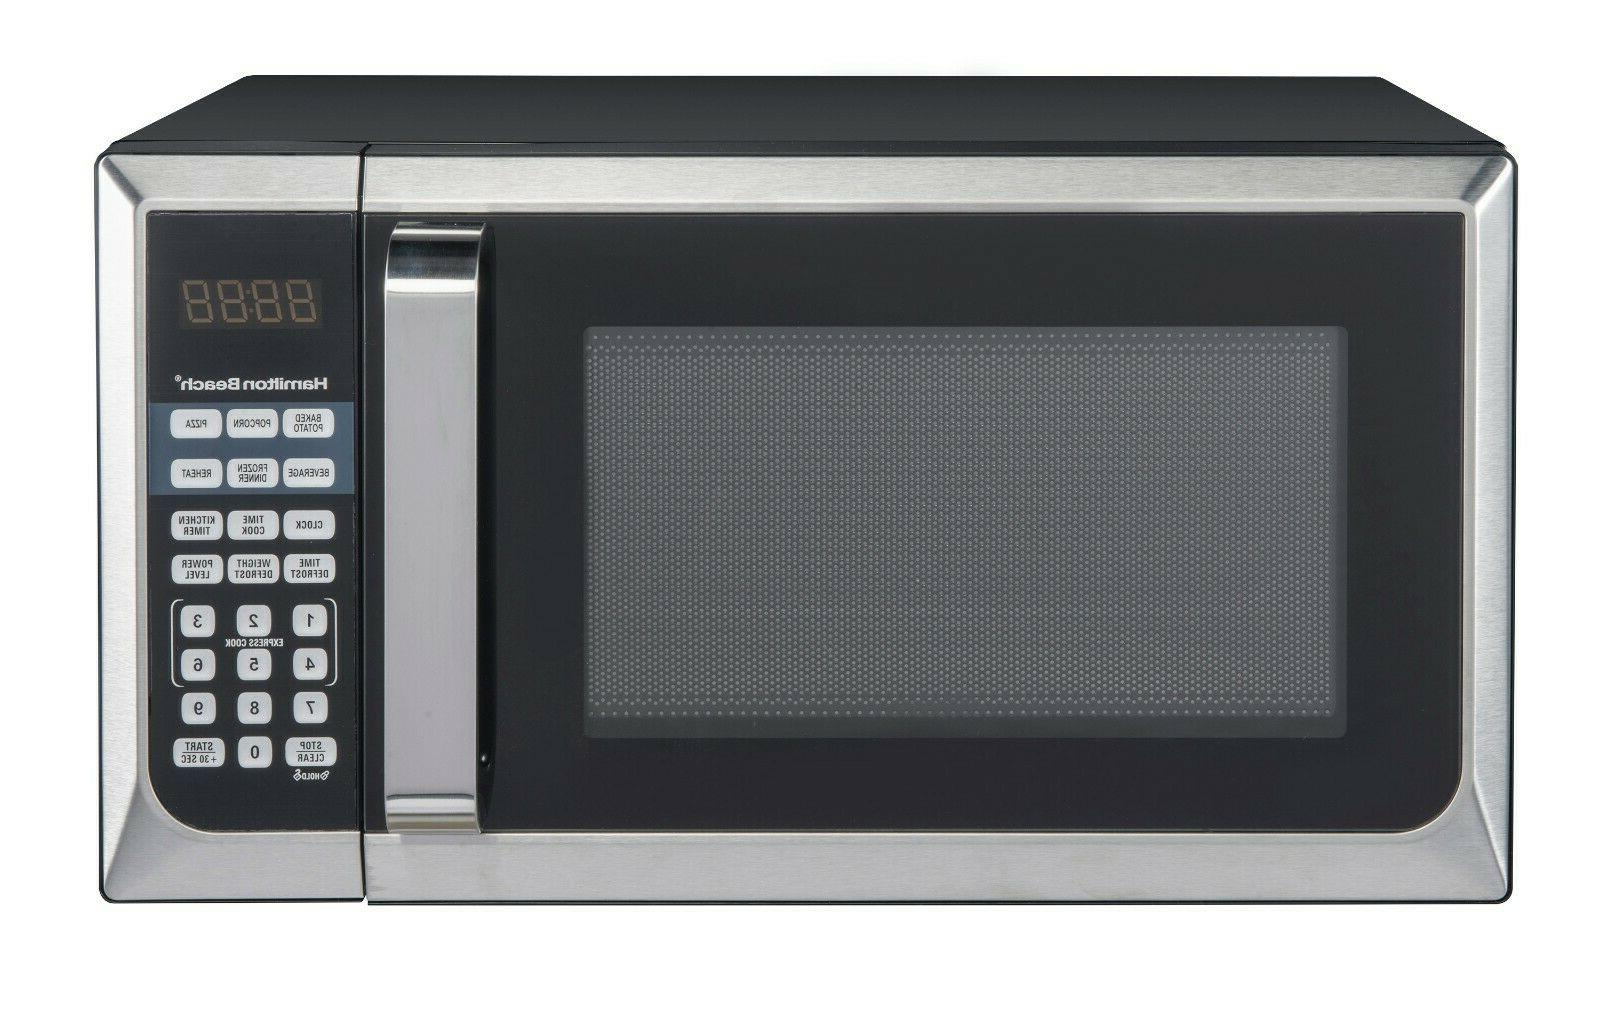 Countertop Microwave Stainless Home 900W